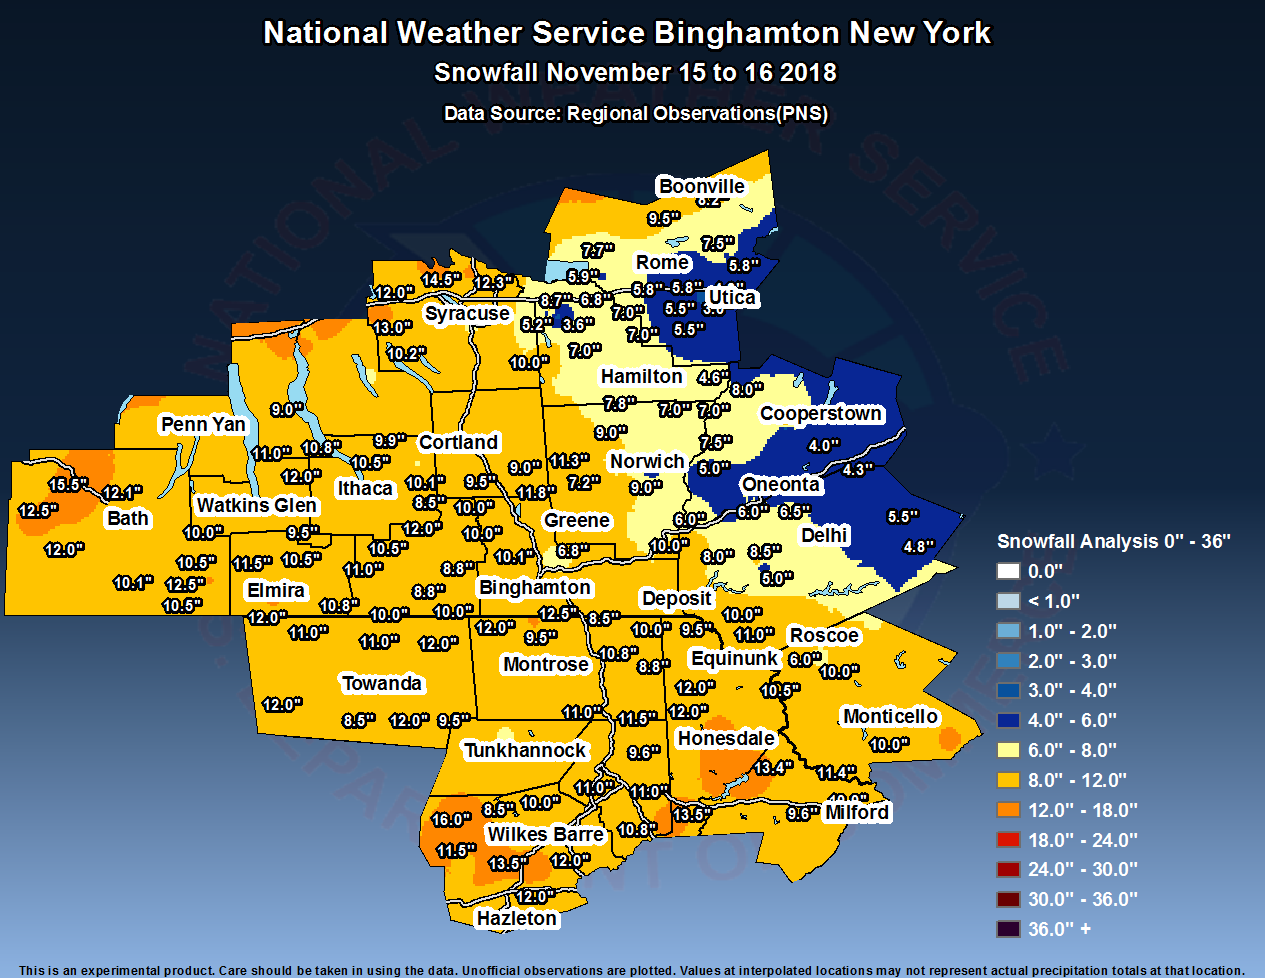 Snowfall amounts across the area.